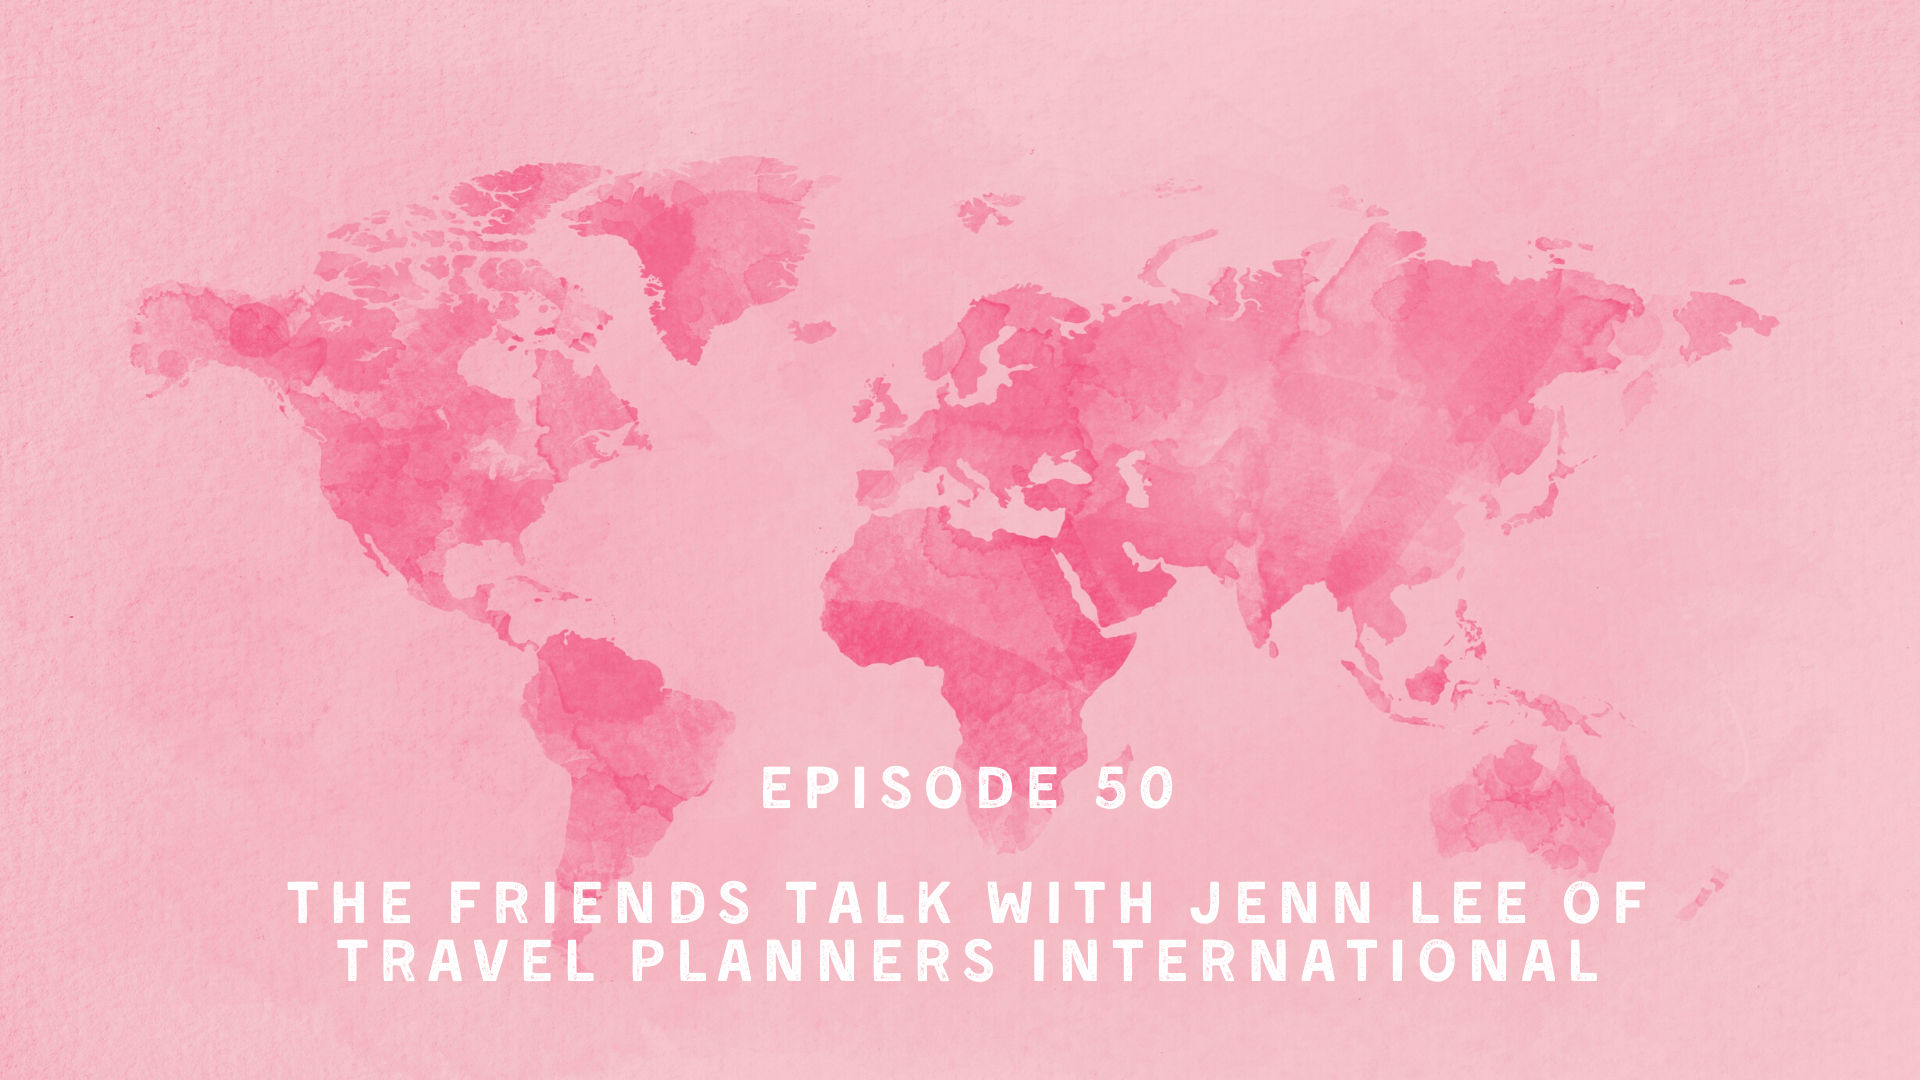 Interview With Jenn Lee